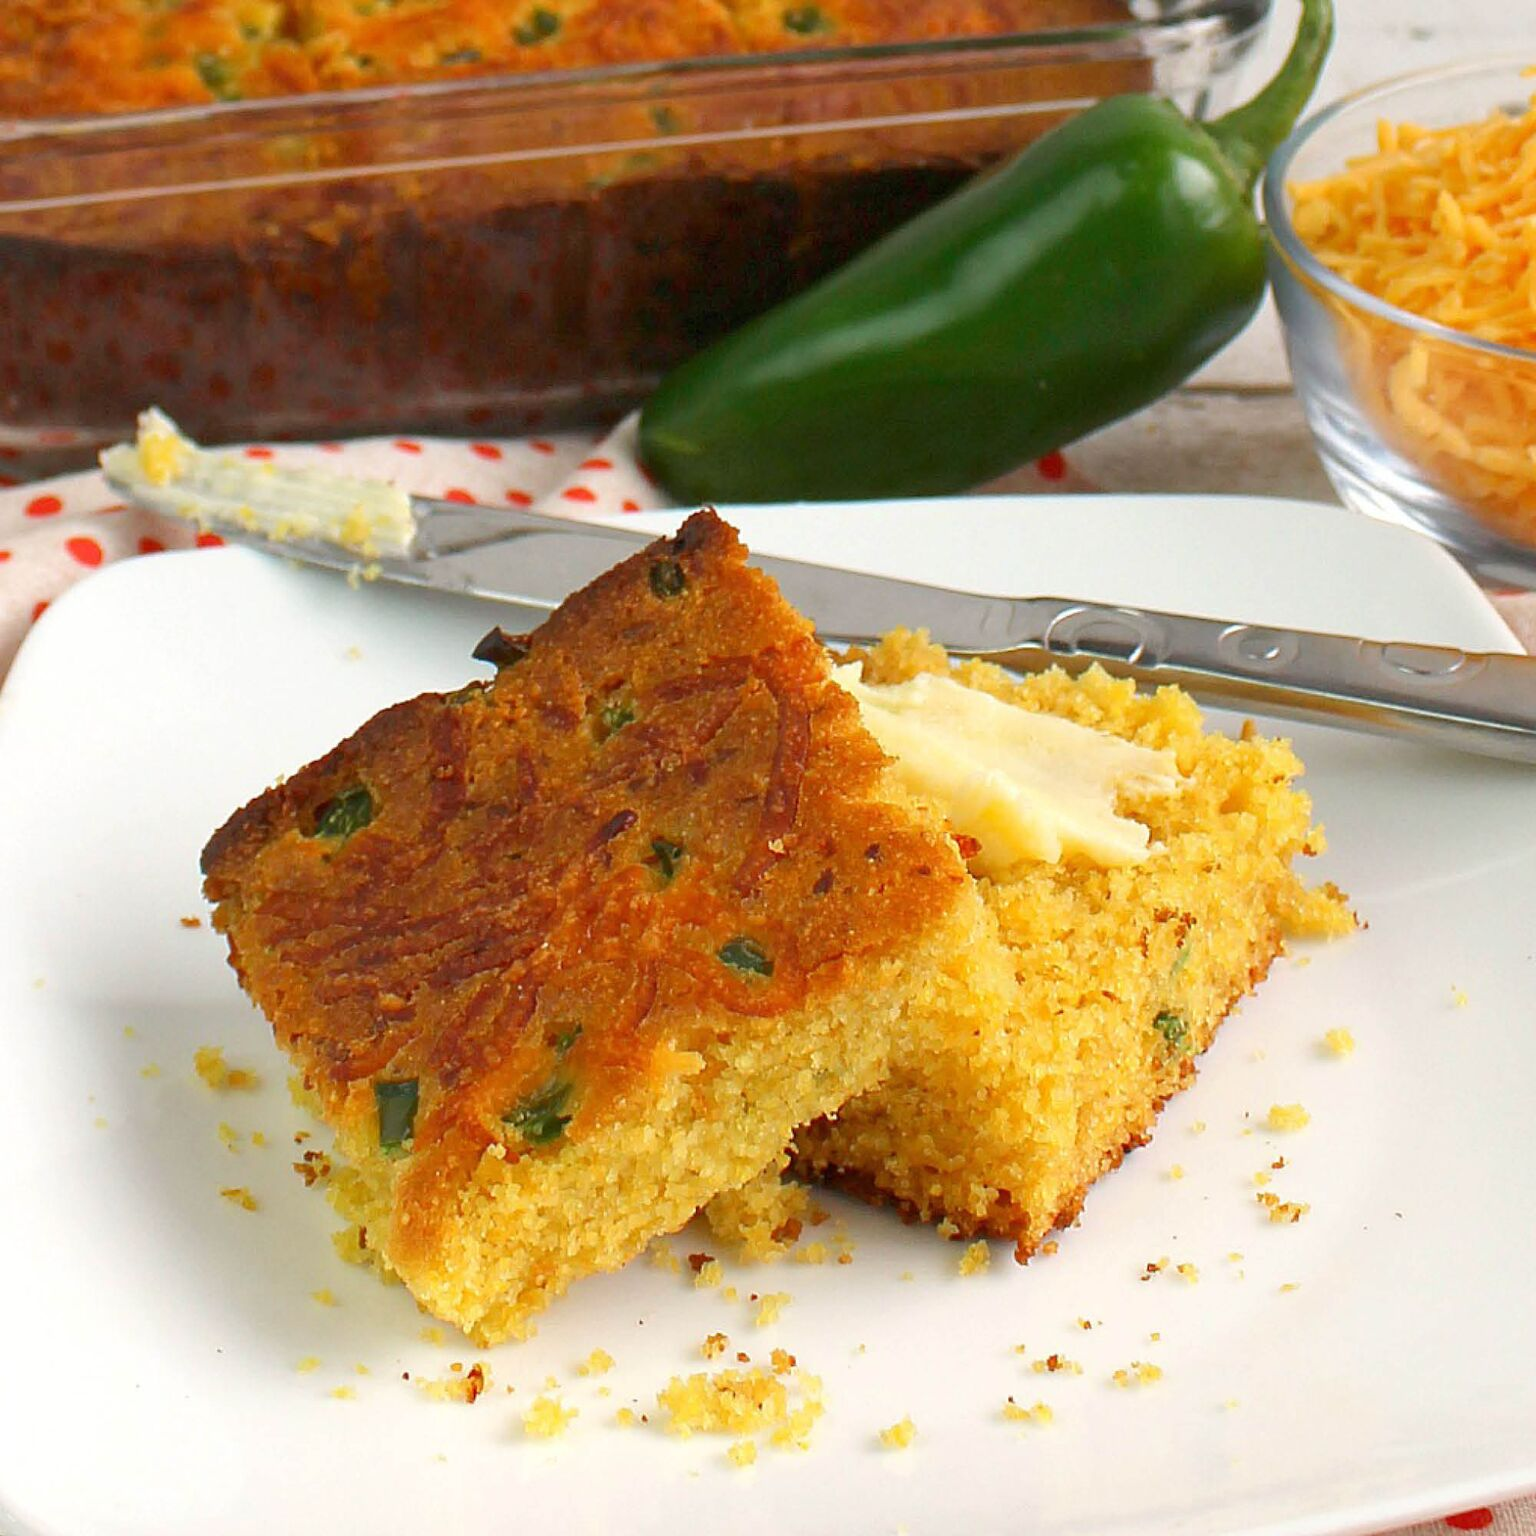 This delicious jalapeno cornbread recipe is a great side dish for family dinner